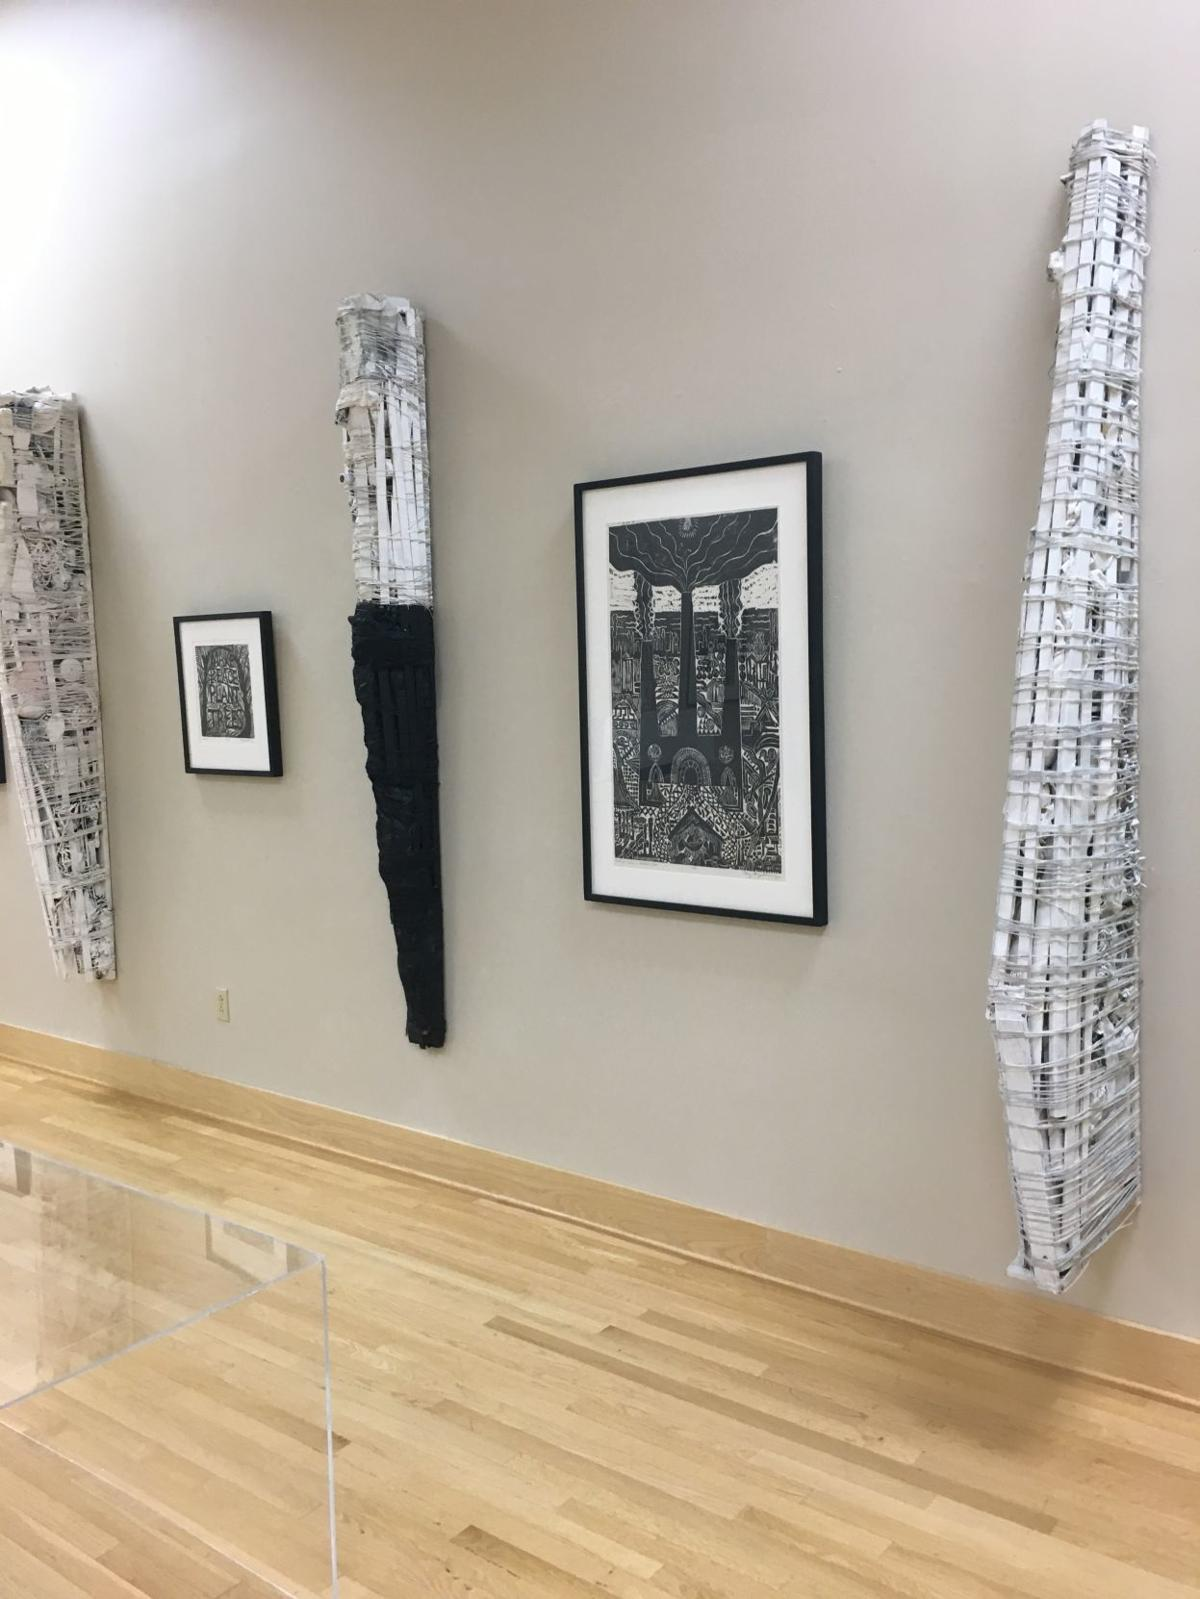 Corey Hagelberg exhibiting woodcuts and sculpture at Brauer Museum solo show